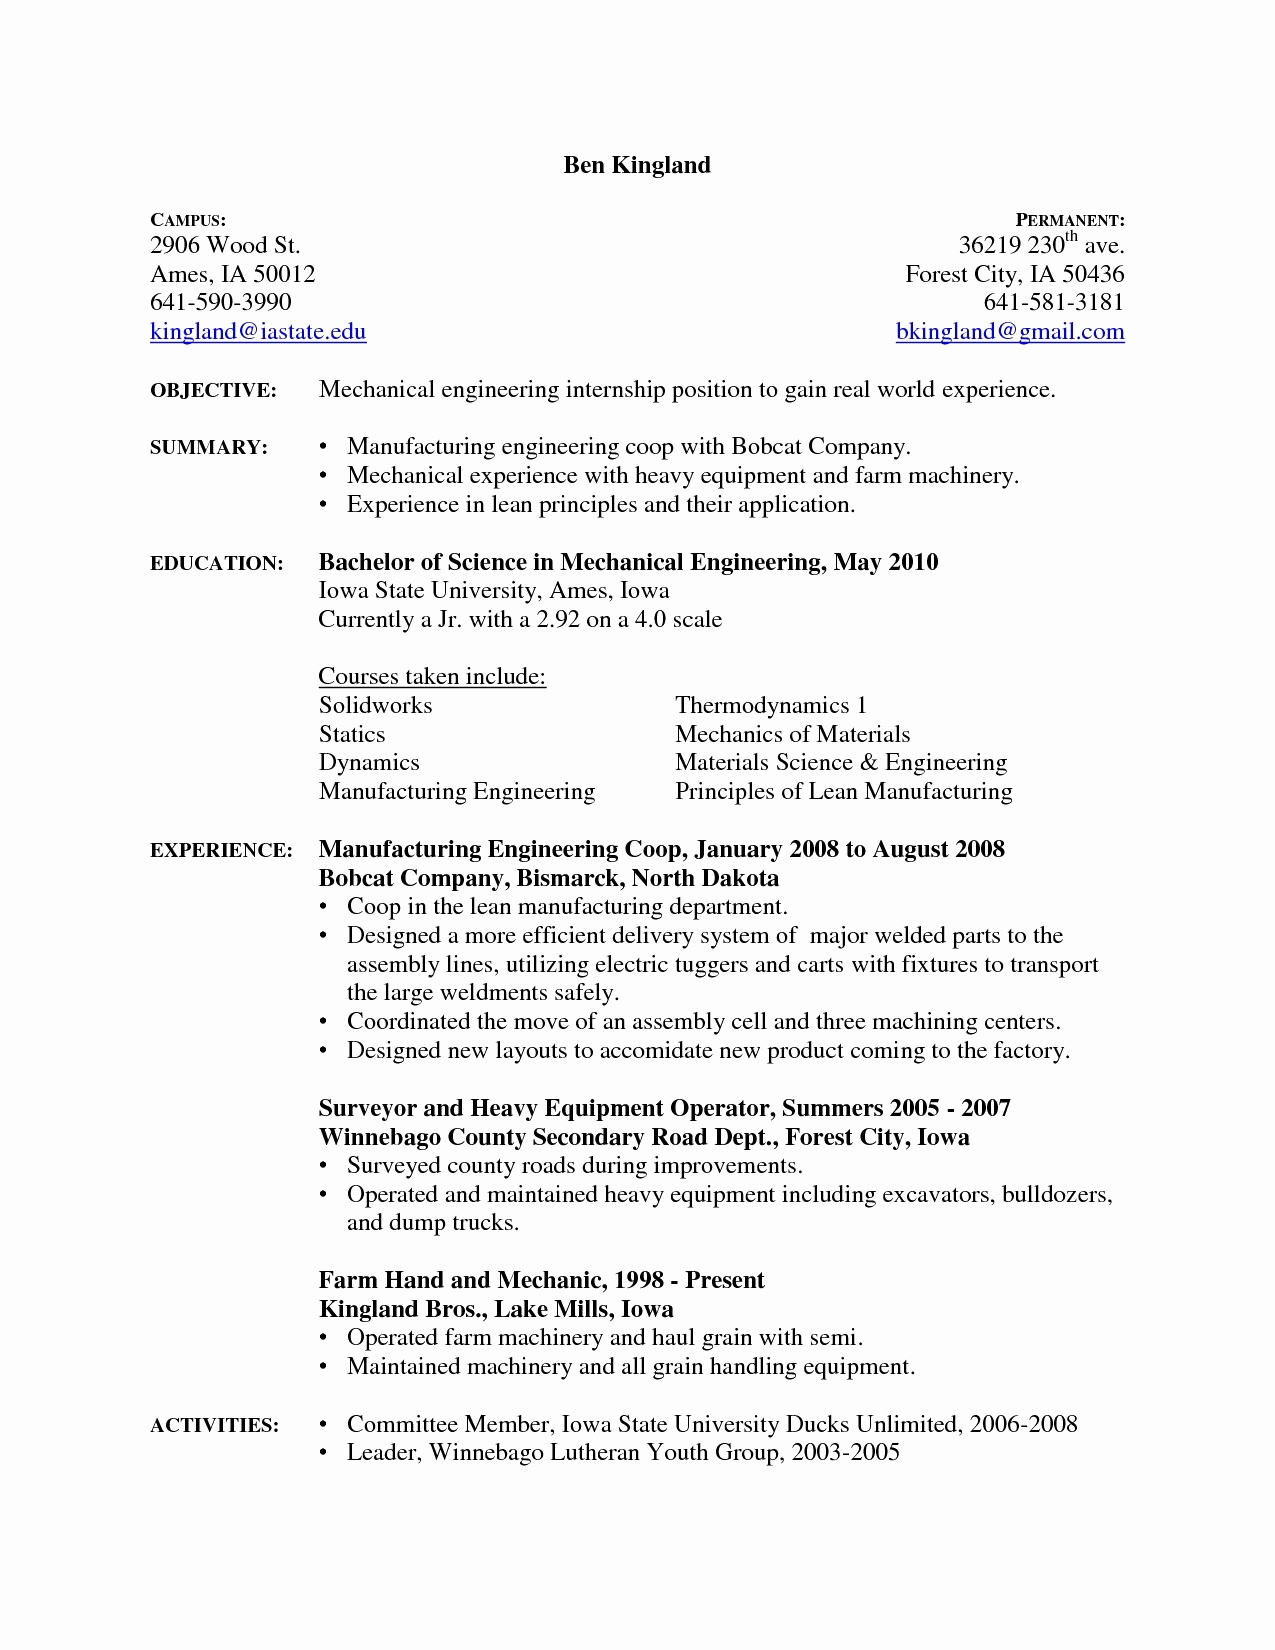 Mechanical Engineering Resume Templates - 11 Design Engineer Resume Ideas